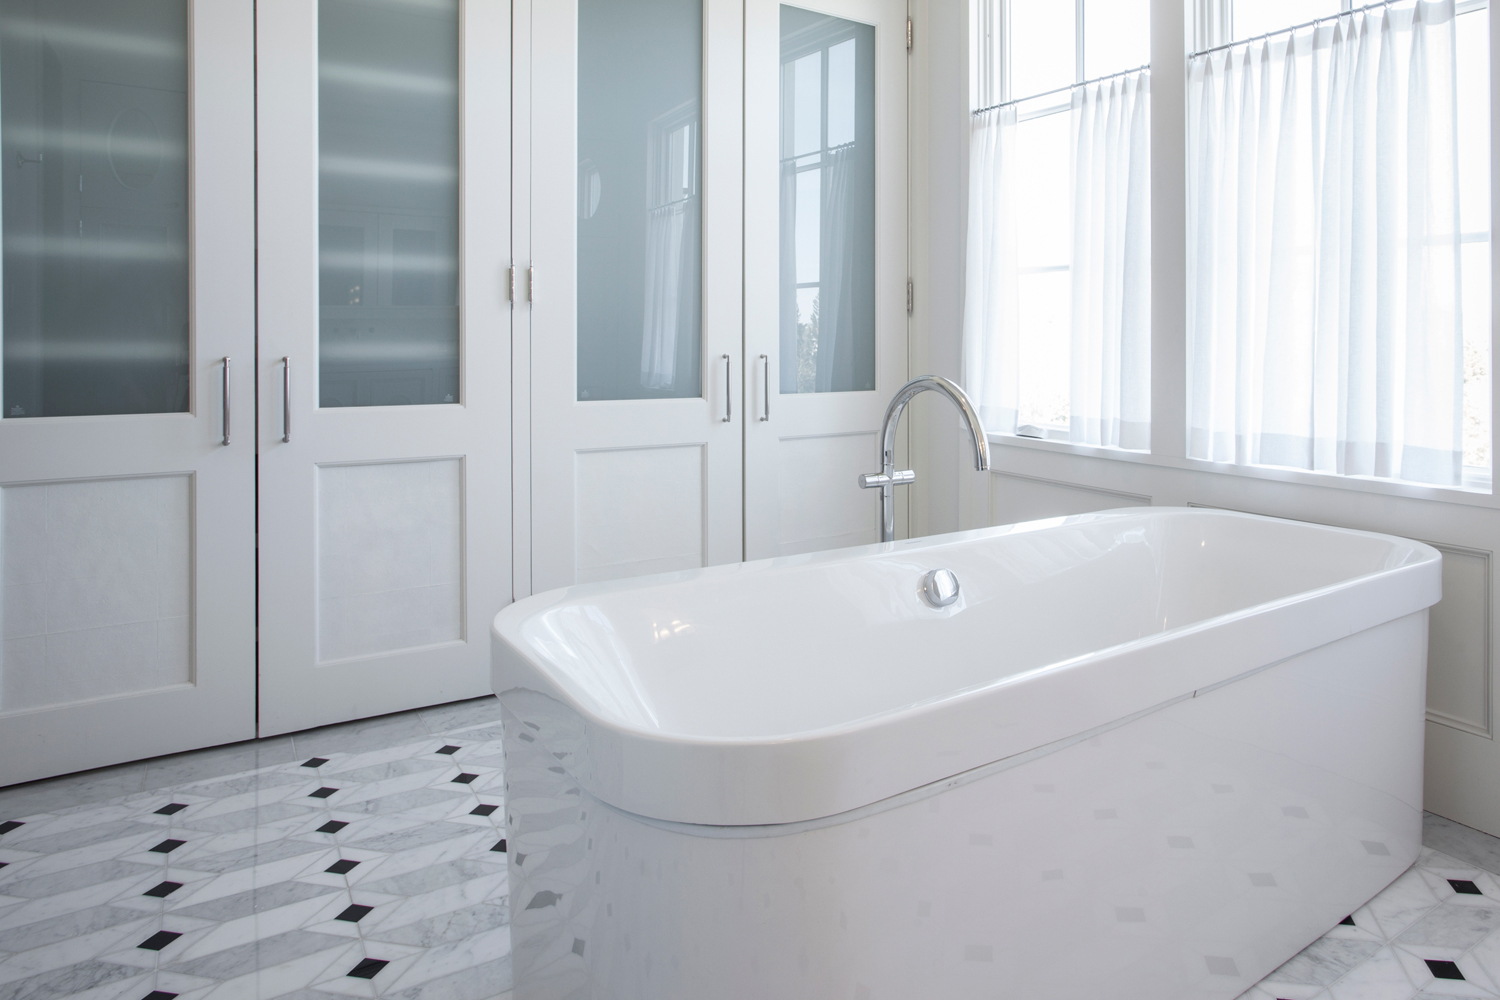 <span>her master bathroom soaking tub</span><span  class='incontracts'>IN CONTRACT </span>